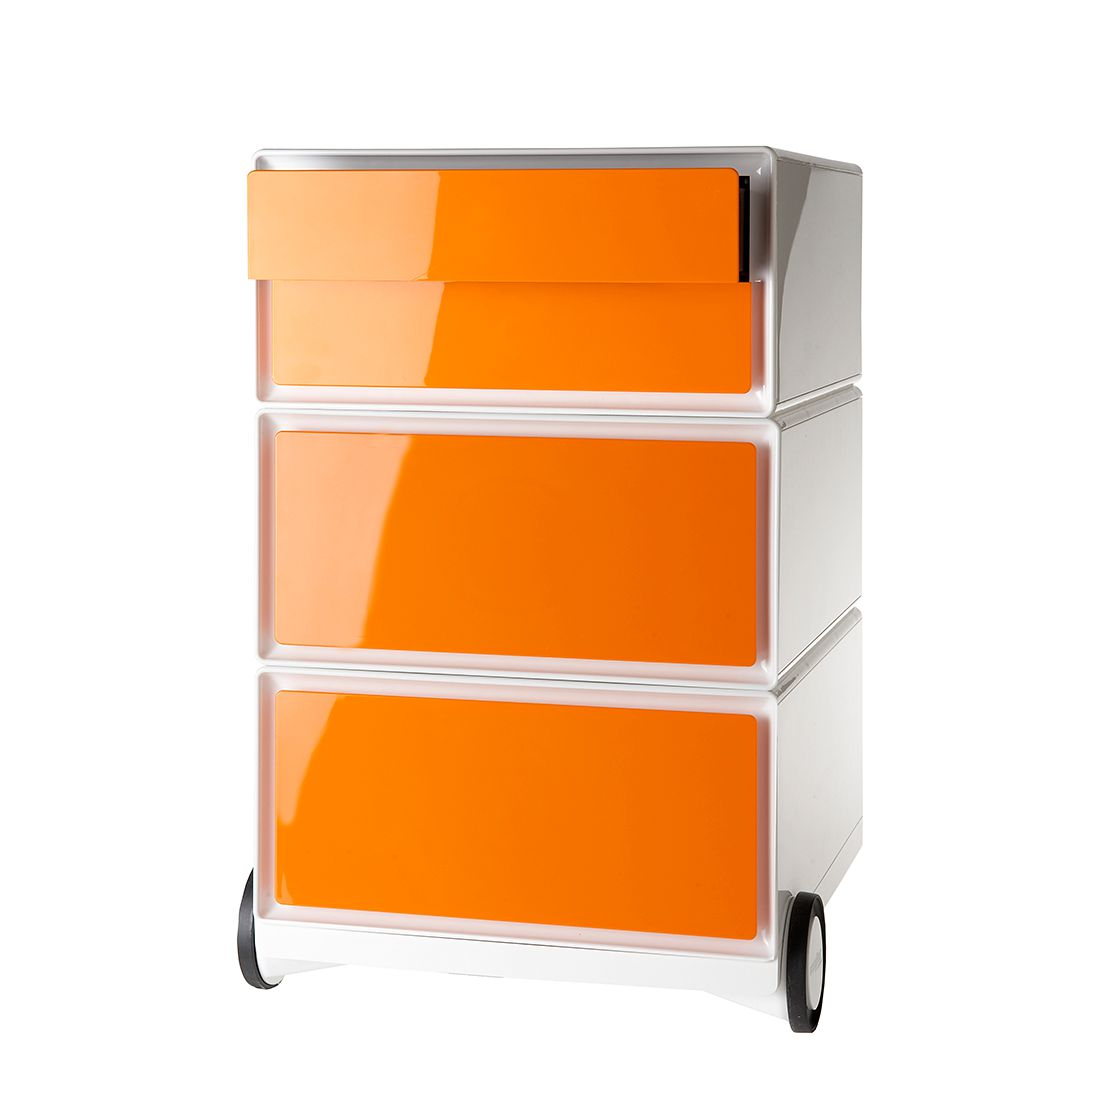 Rollcontainer easyBox II - Weiß / Orange, easy Office und Paperflow